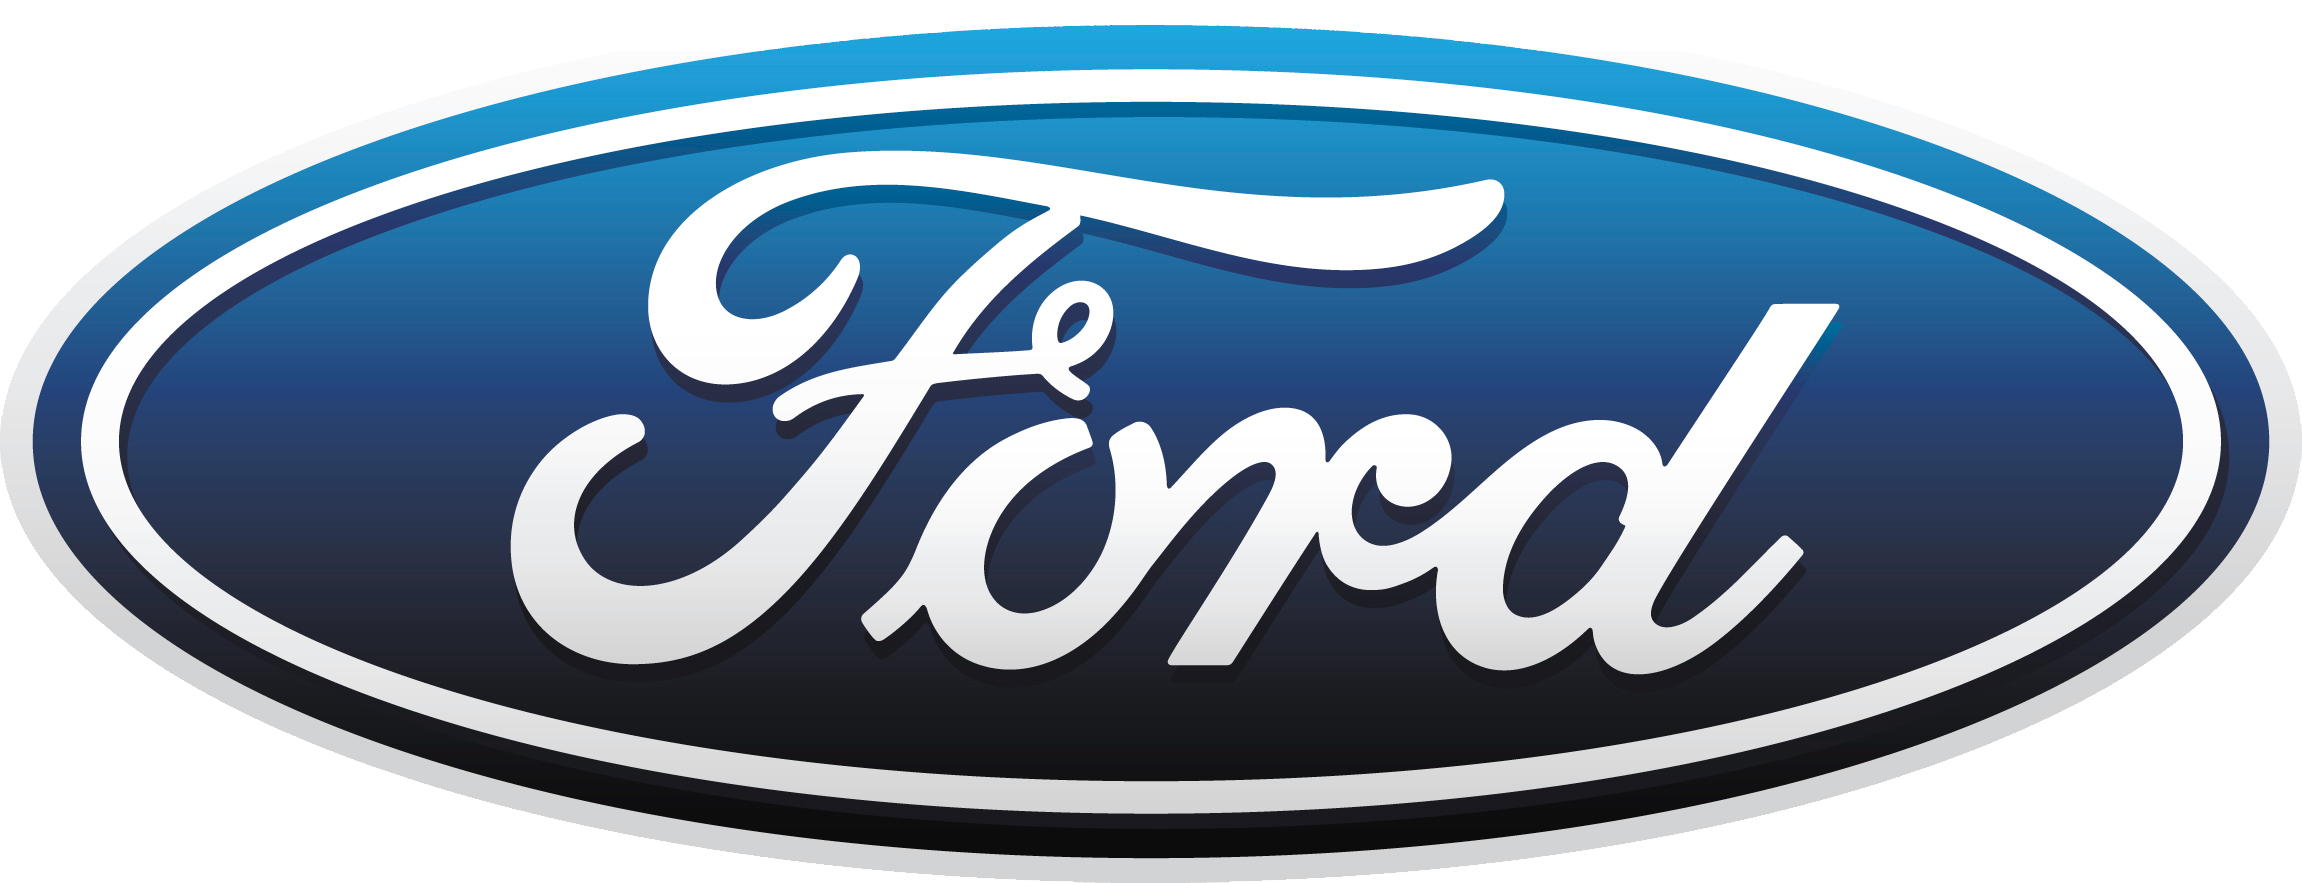 Ford Auto Logos Clipart.